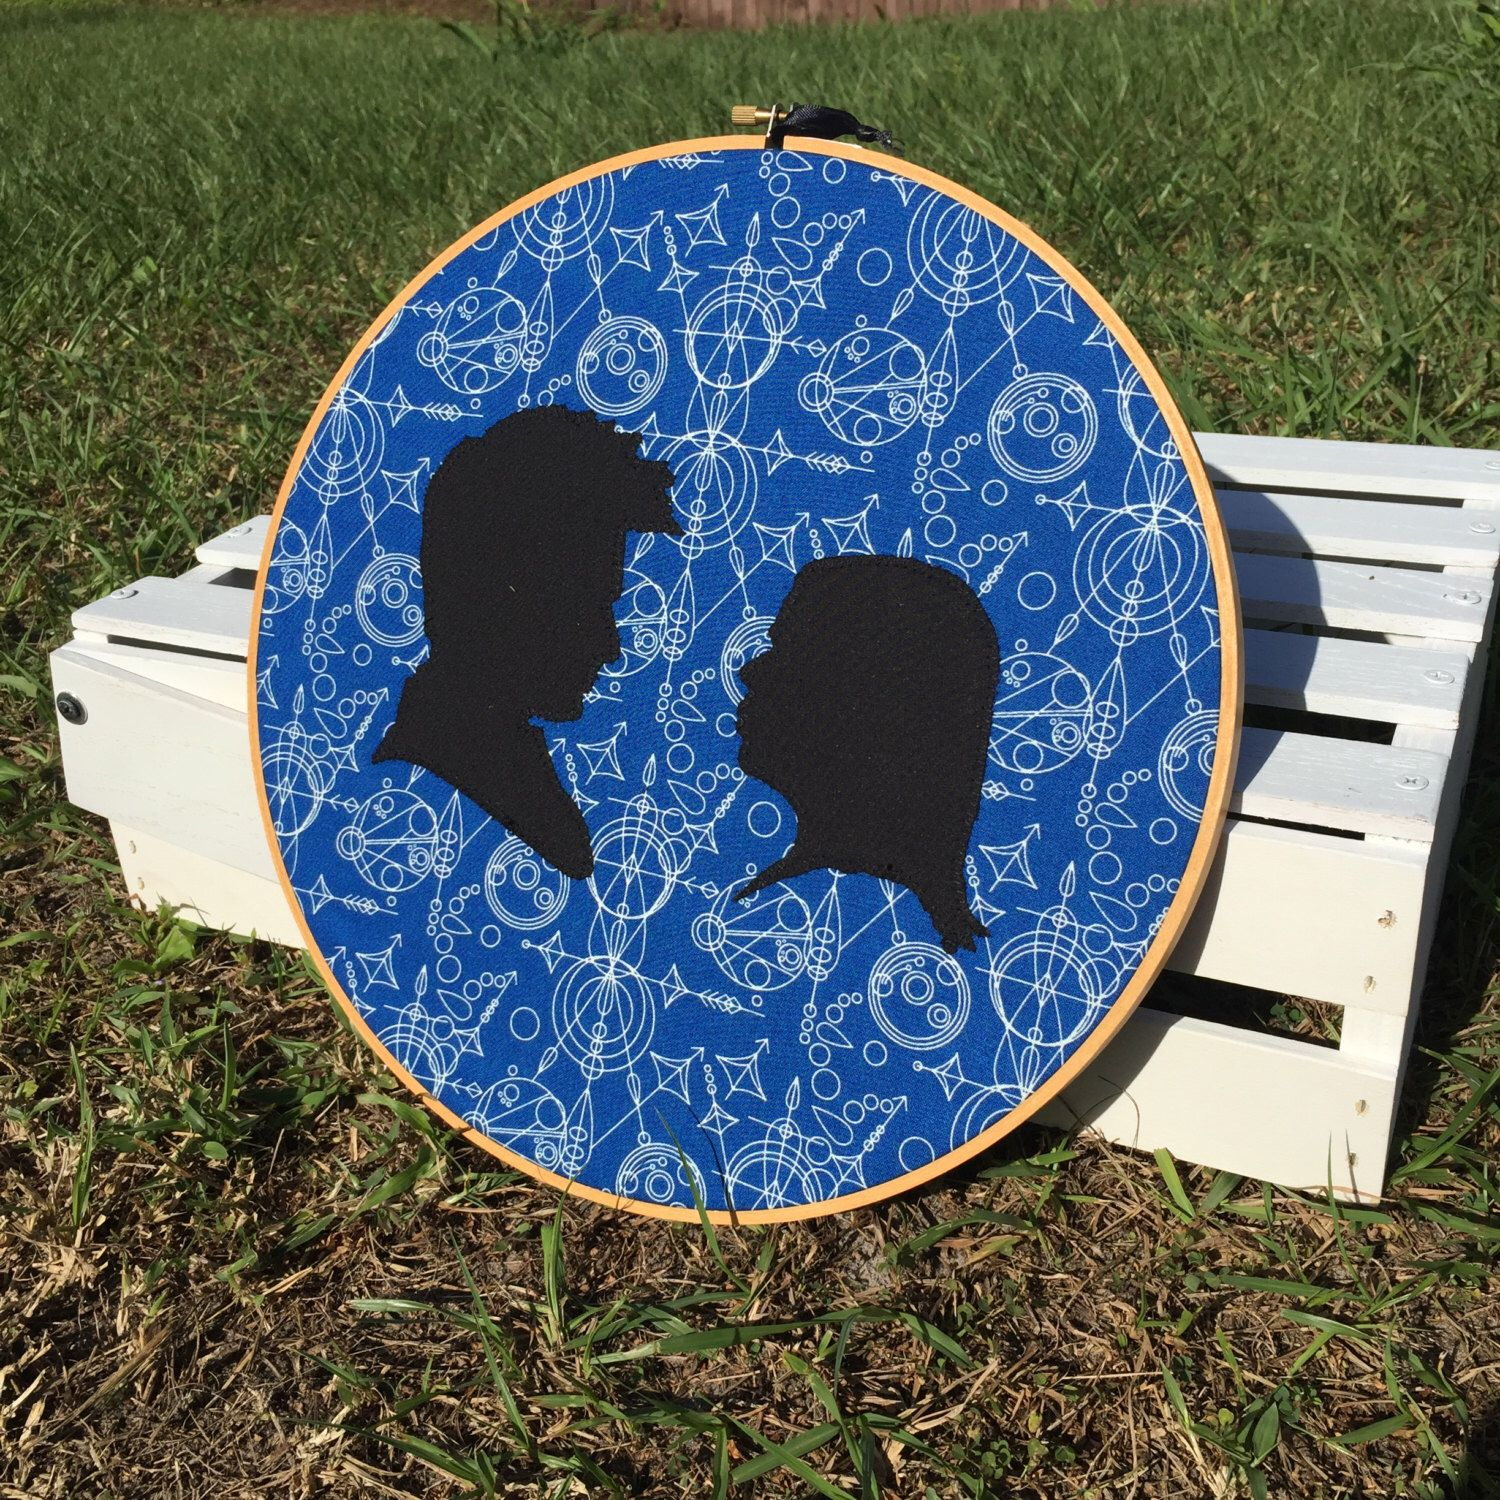 Doctor Who Silhoeutte Portrait Cameos Wall Embroidery Hoop by Handmade3D on Etsy https://www.etsy.com/listing/257831435/doctor-who-silhoeutte-portrait-cameos